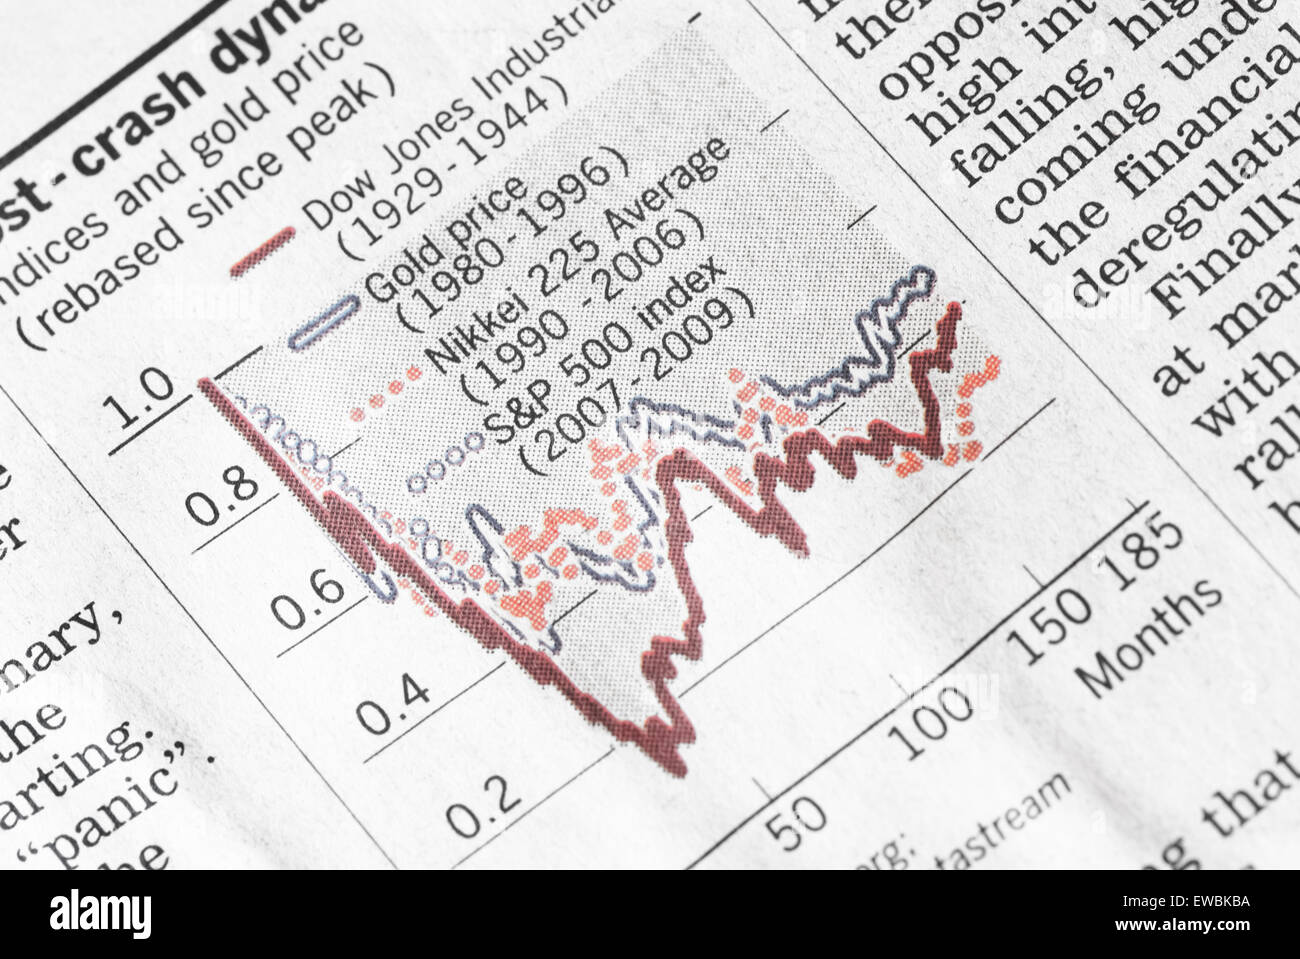 Financial indexes chart showing losses. - Stock Image